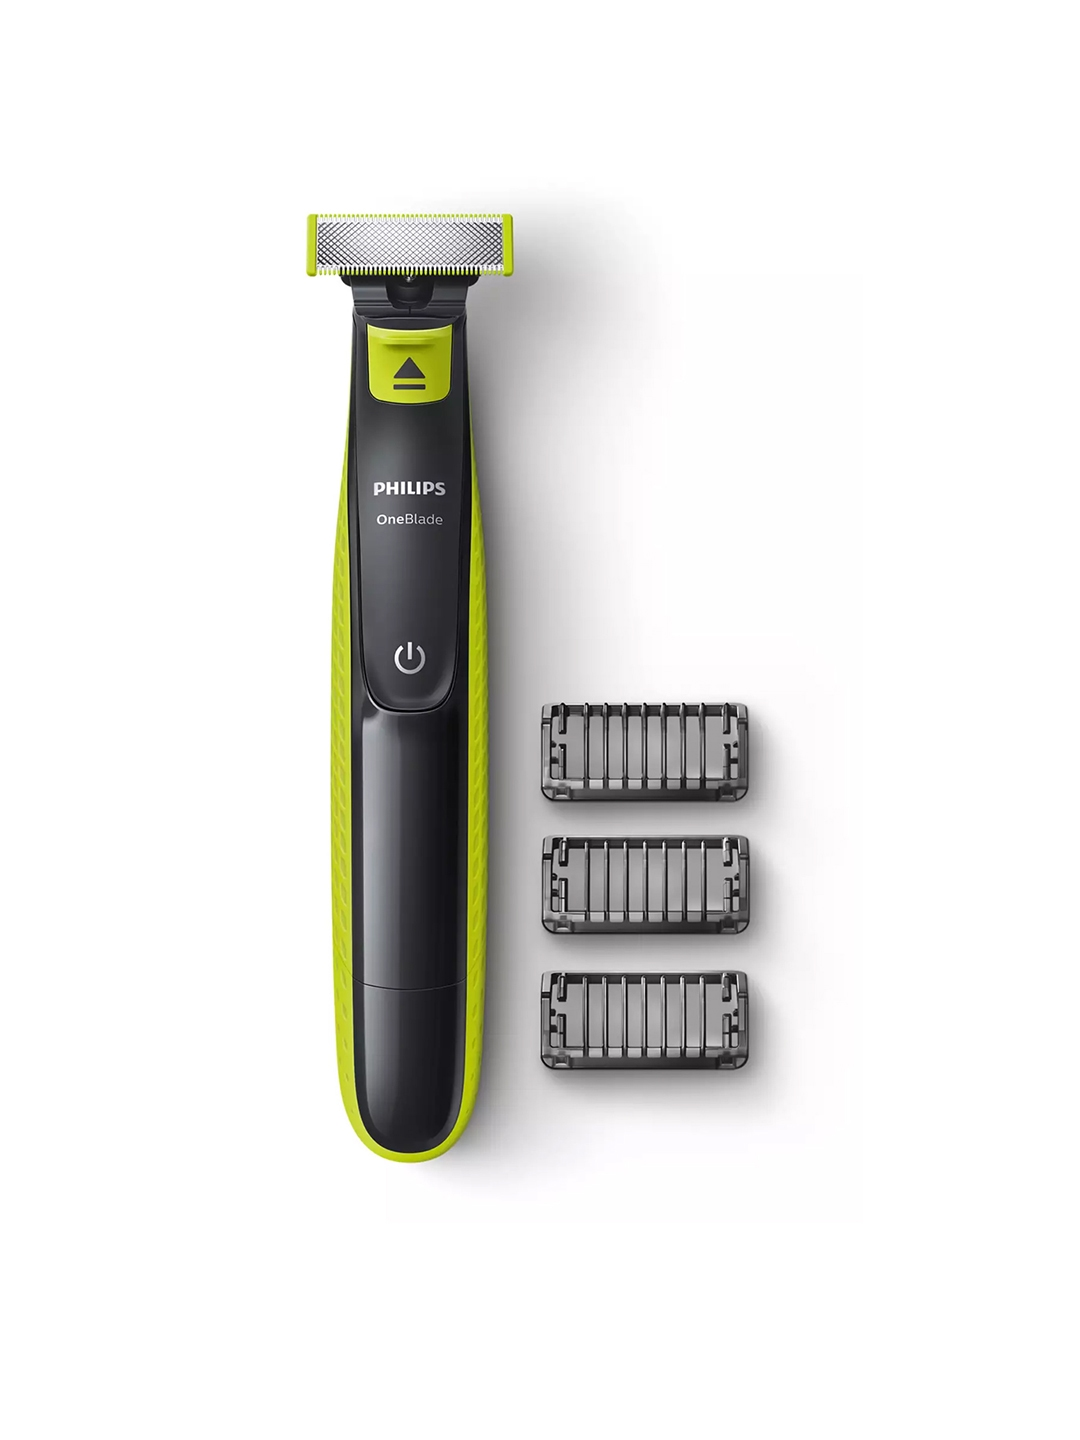 Philips Men QP2525/10 Hybrid OneBlade Trimmer   3 Trimming Combs   Black   Green